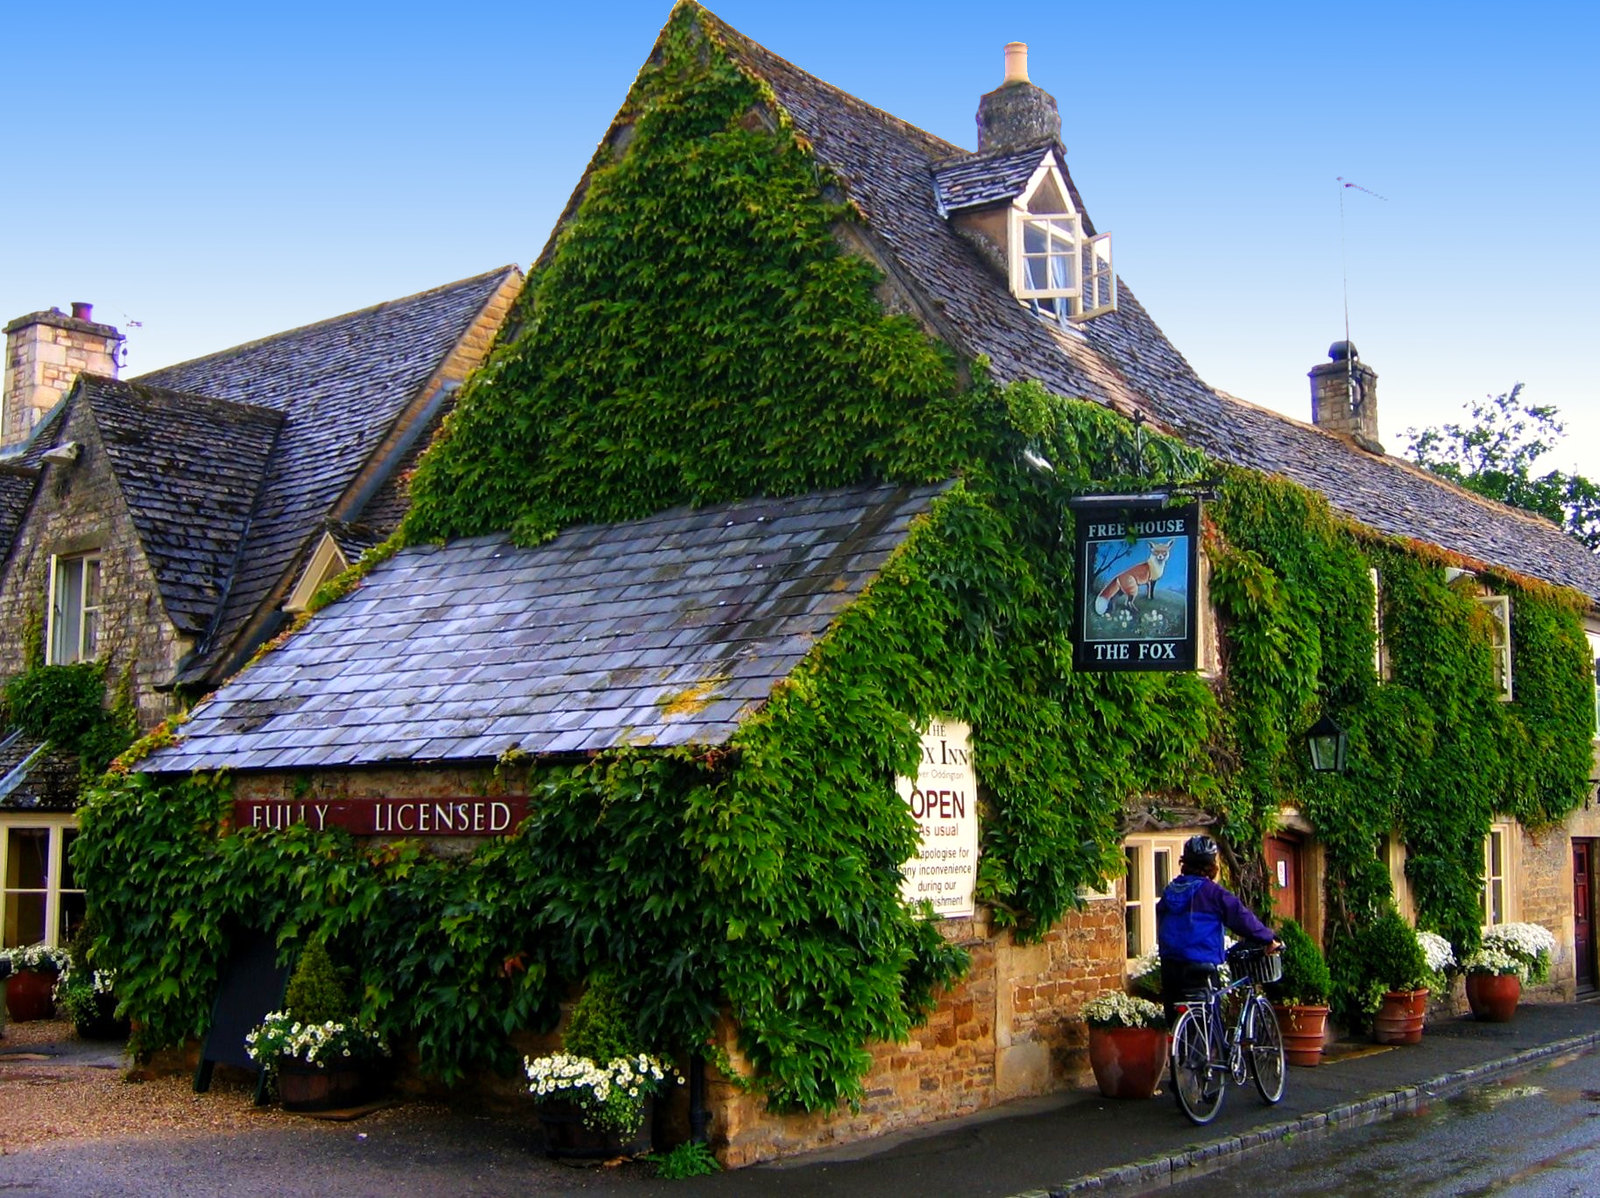 The Fox Inn in Lower Oddington in the Cotswolds. Credit JR P